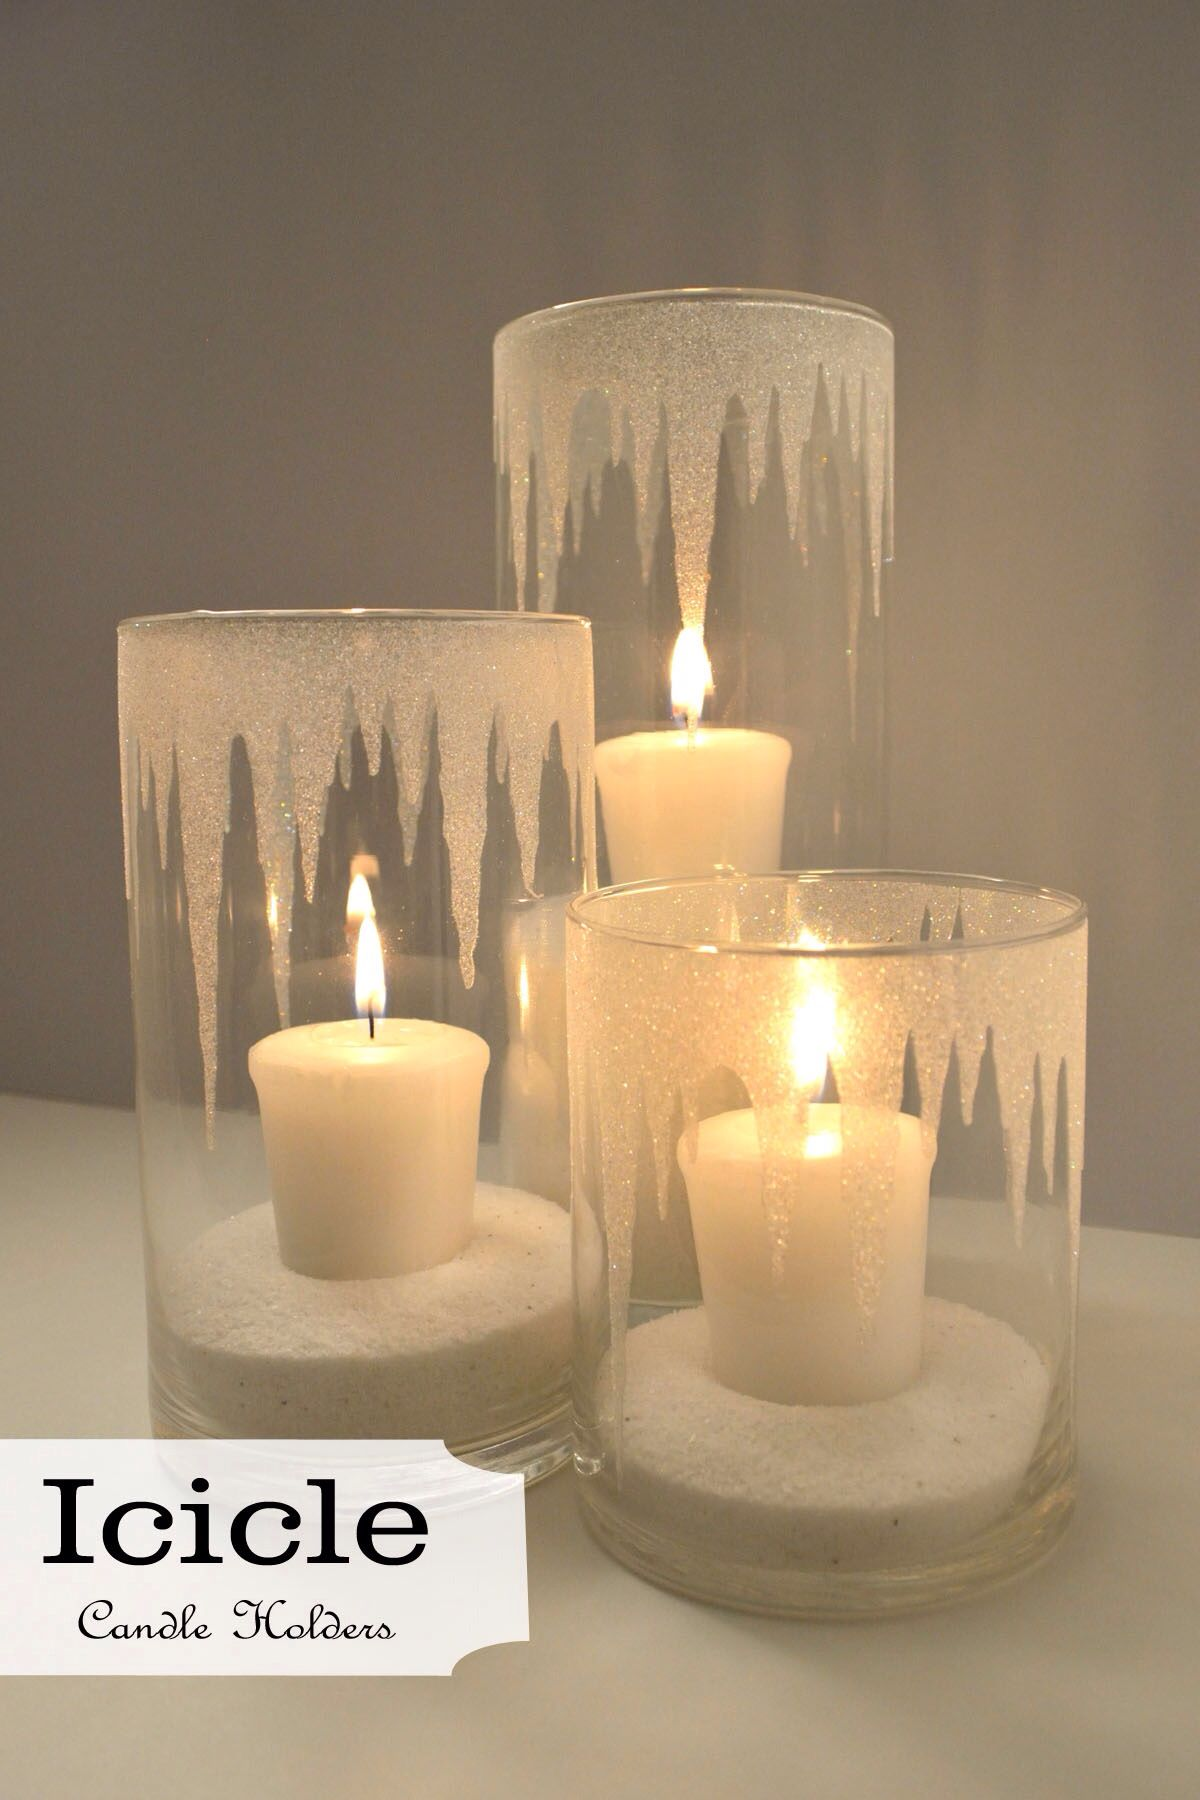 Iced candle holders. Epsom salt crystals inside and frosted glass ...